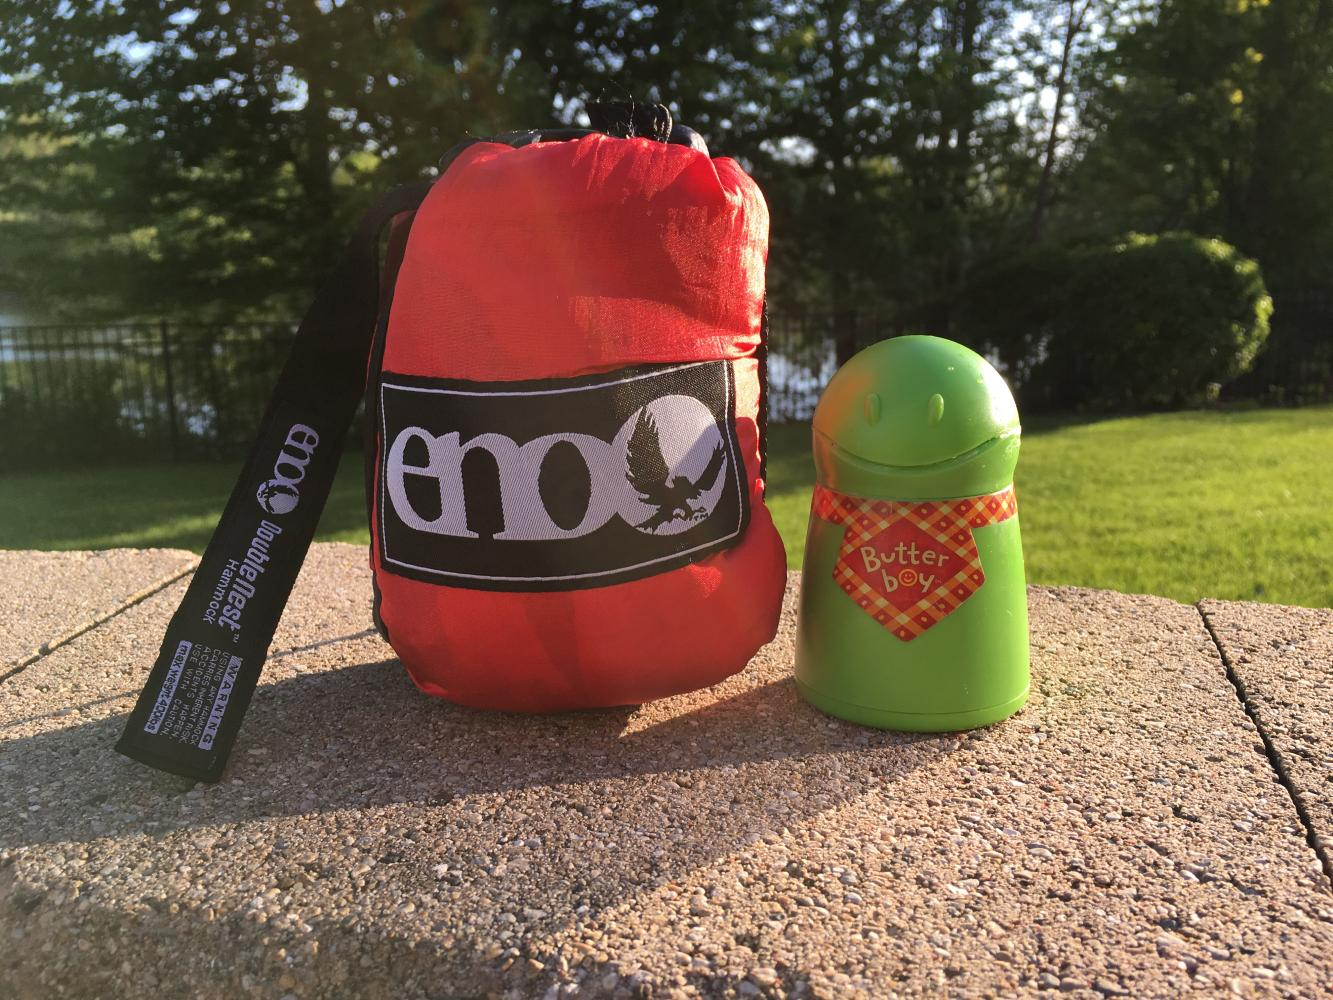 The ENO Hammock and Butter Boy are two simple ways to make a more relaxing summer. The ENO hammock costs approximately $100, and the Butter Boy is $8